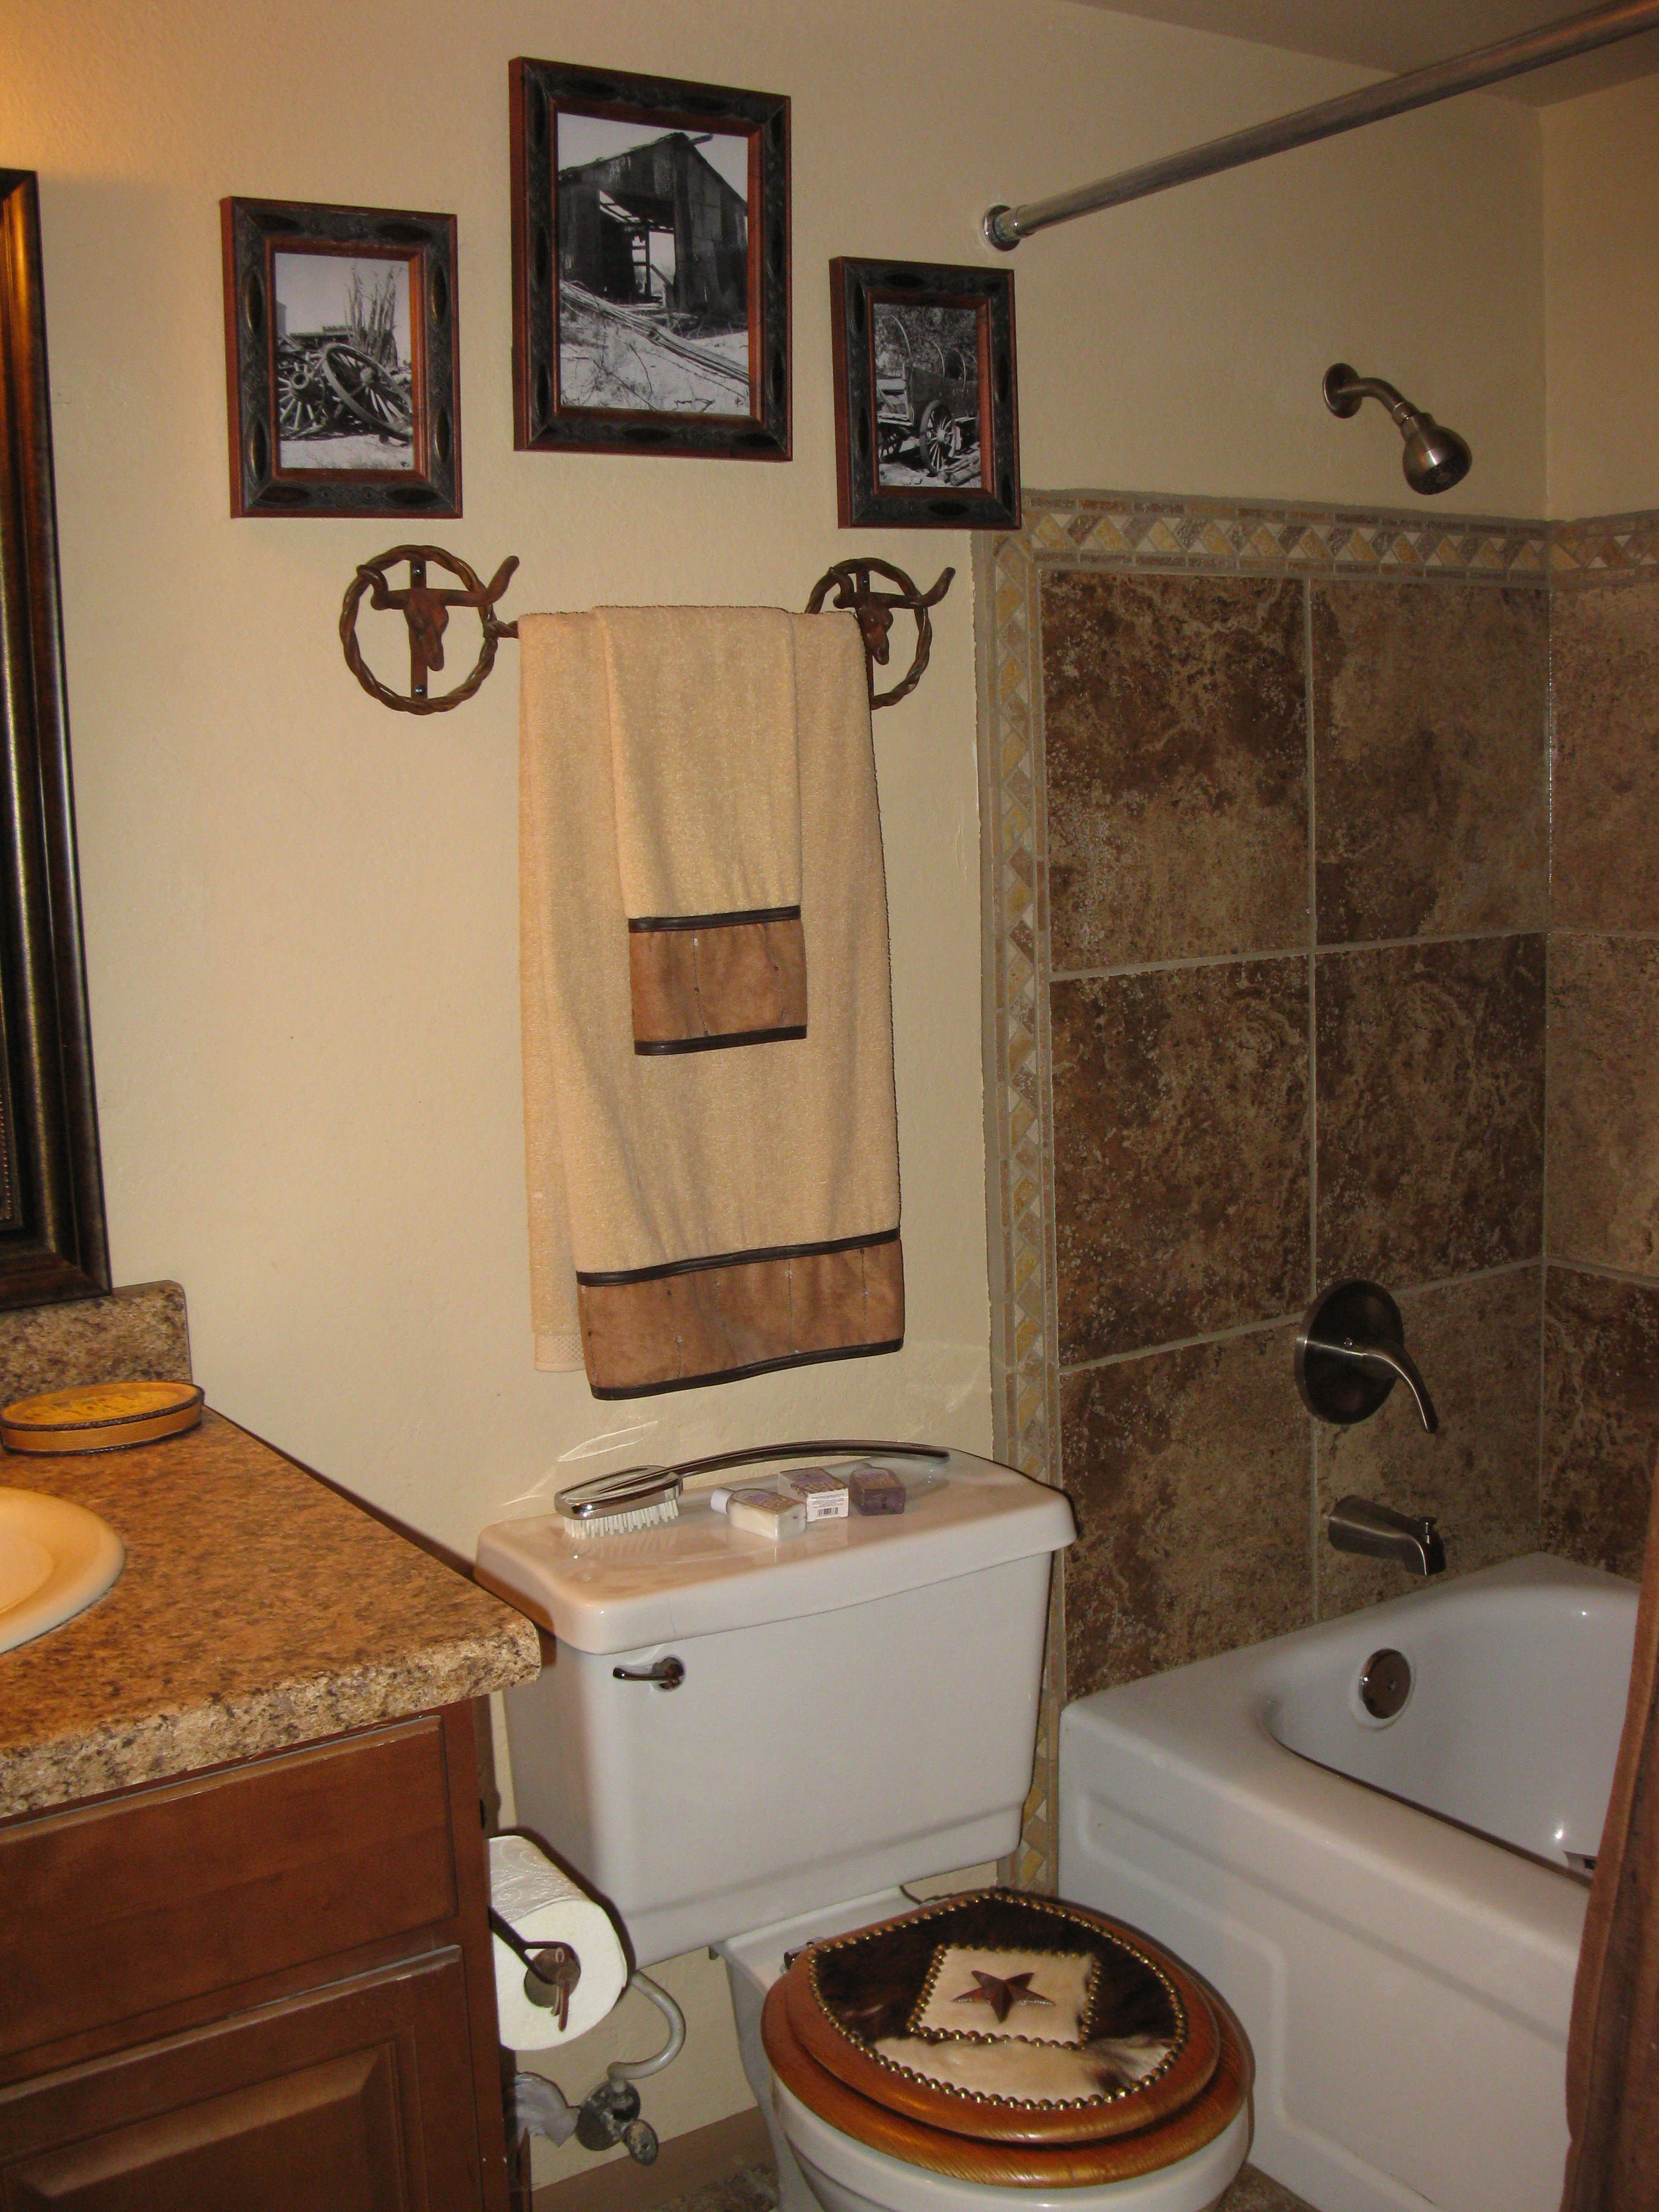 Western Bathroom Items That I Have Done To Our Home from